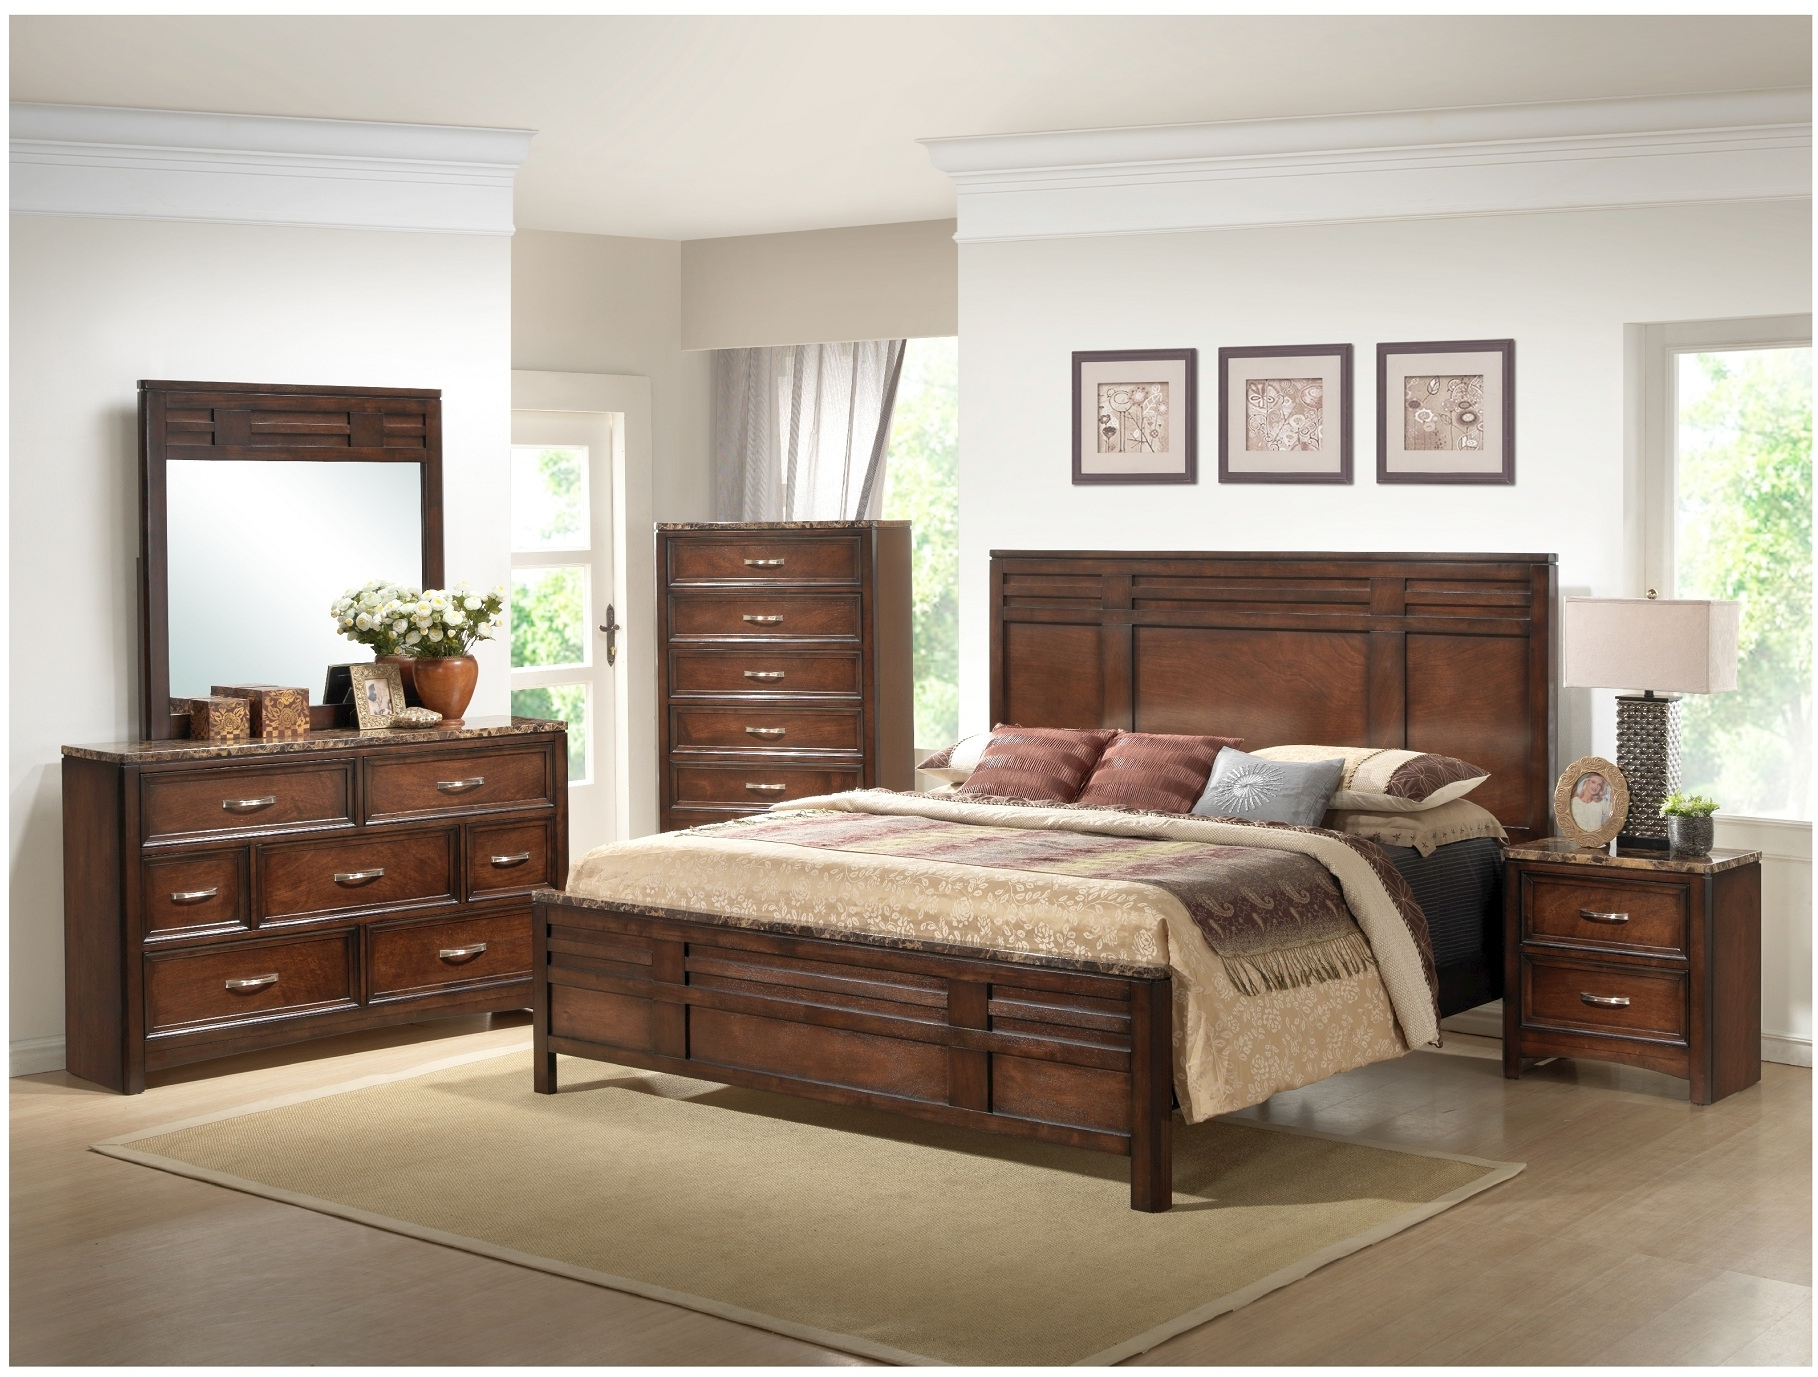 Get Your Walnut Bedroom Furniture: nice bedroom furniture